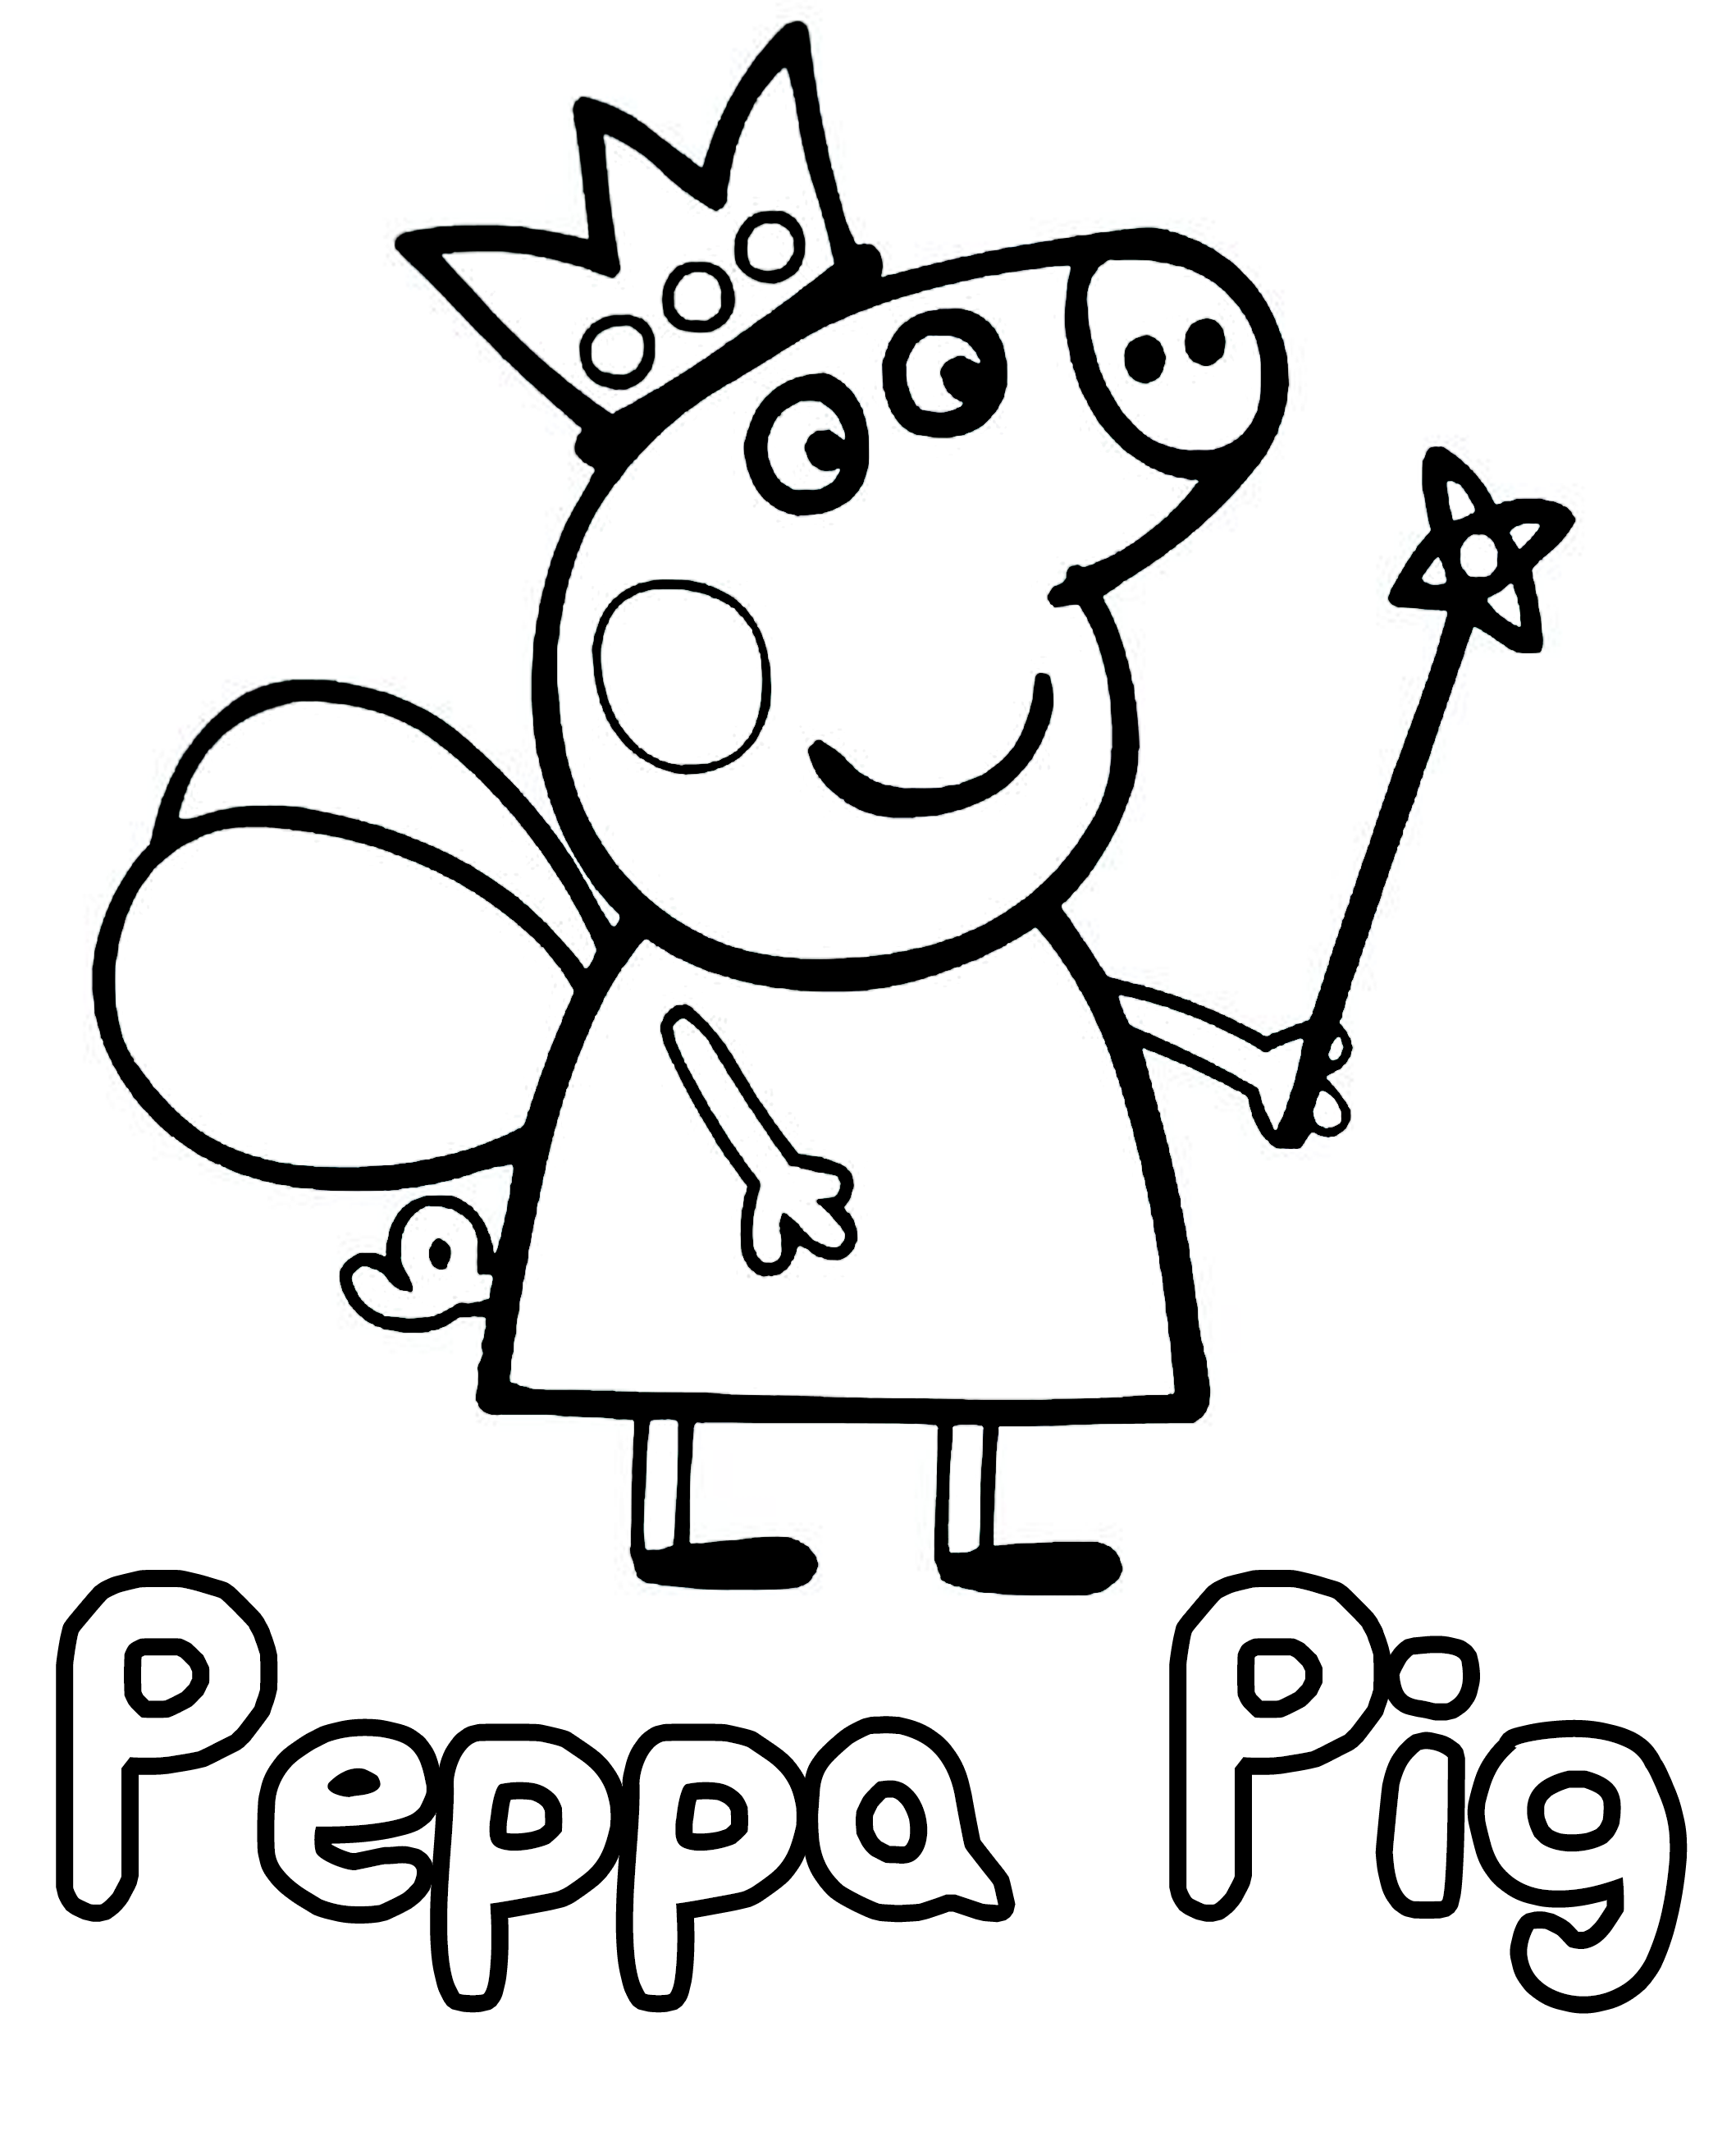 Peppa Pig Coloring Bubakids Creative Peppa Pig Pig Peppapig Pig Cartoon Coloring Pag Peppa Pig Colouring Peppa Pig Coloring Pages Cartoon Coloring Pages